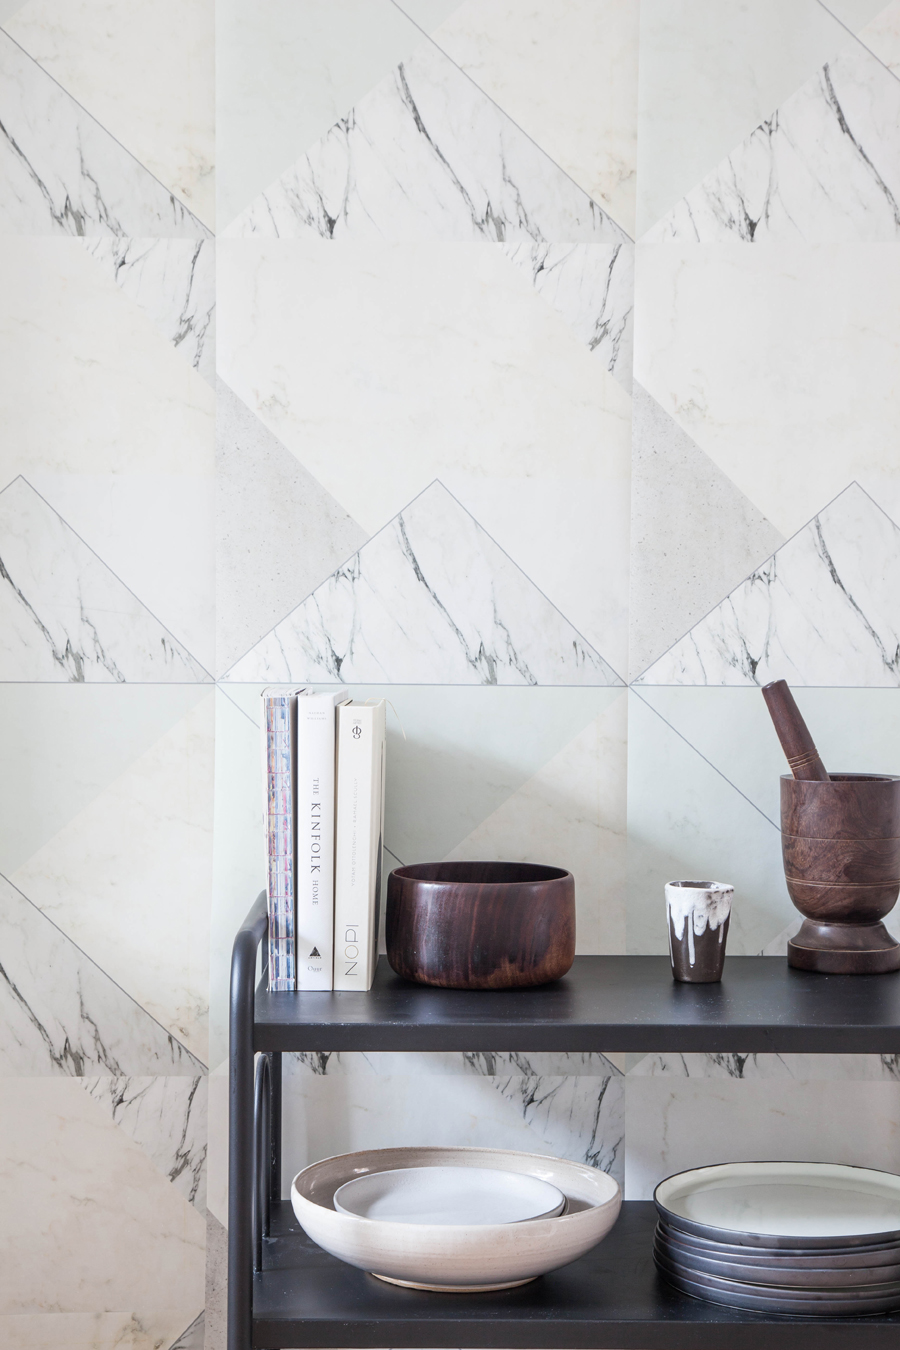 Good Wallpaper Marble April - studio-lilesadi-wallpaper-marble-1  You Should Have_111957.jpg?format\u003doriginal